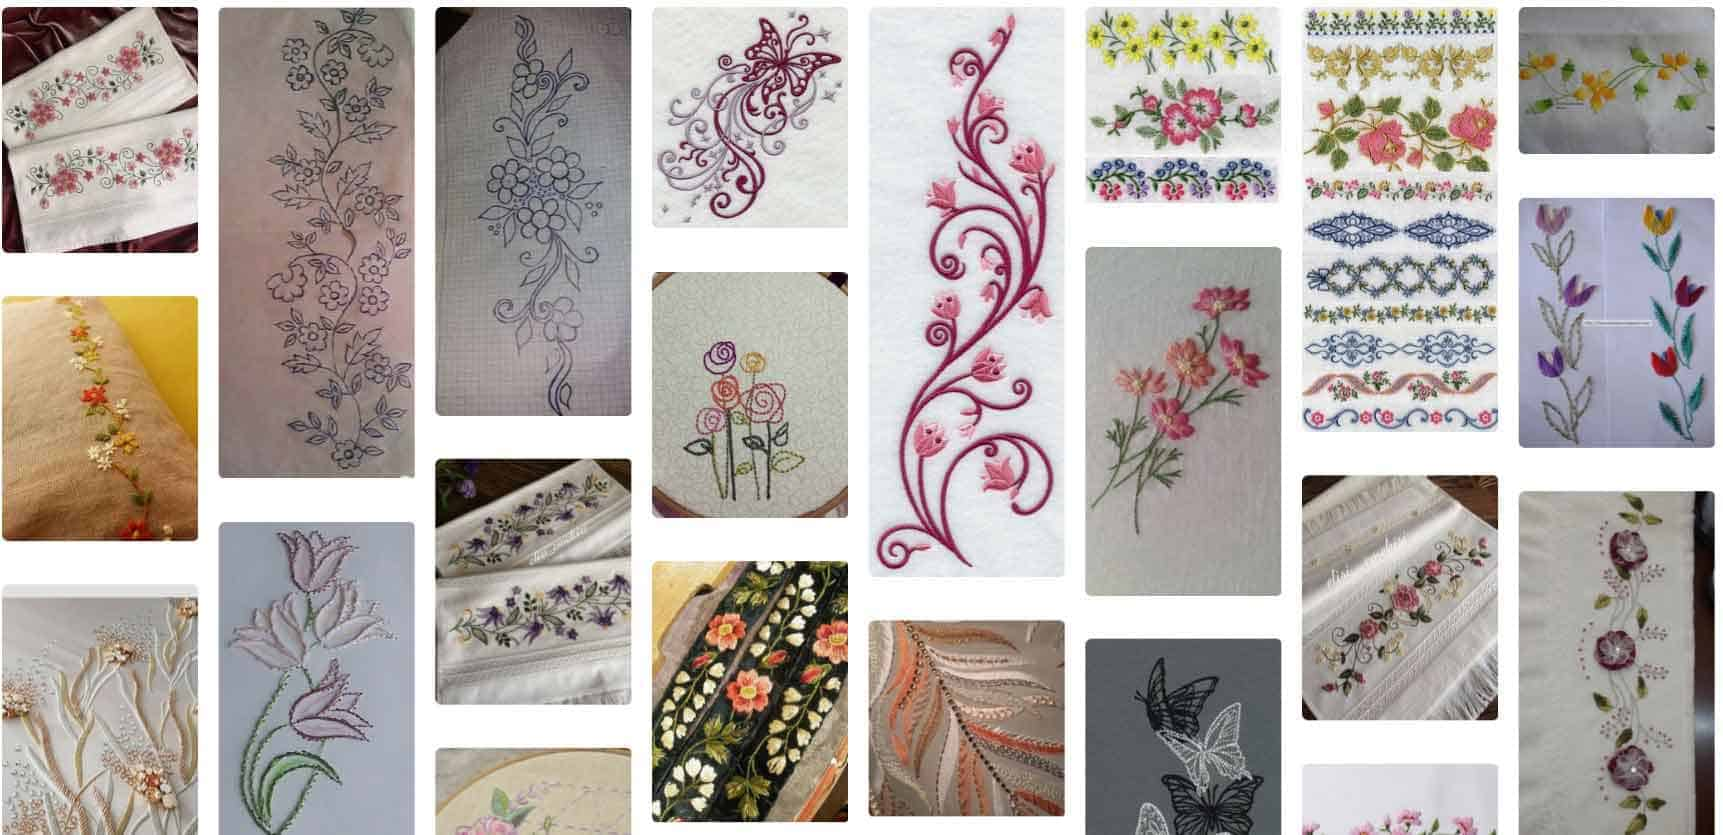 Latest embroidery patterns curated from across the world